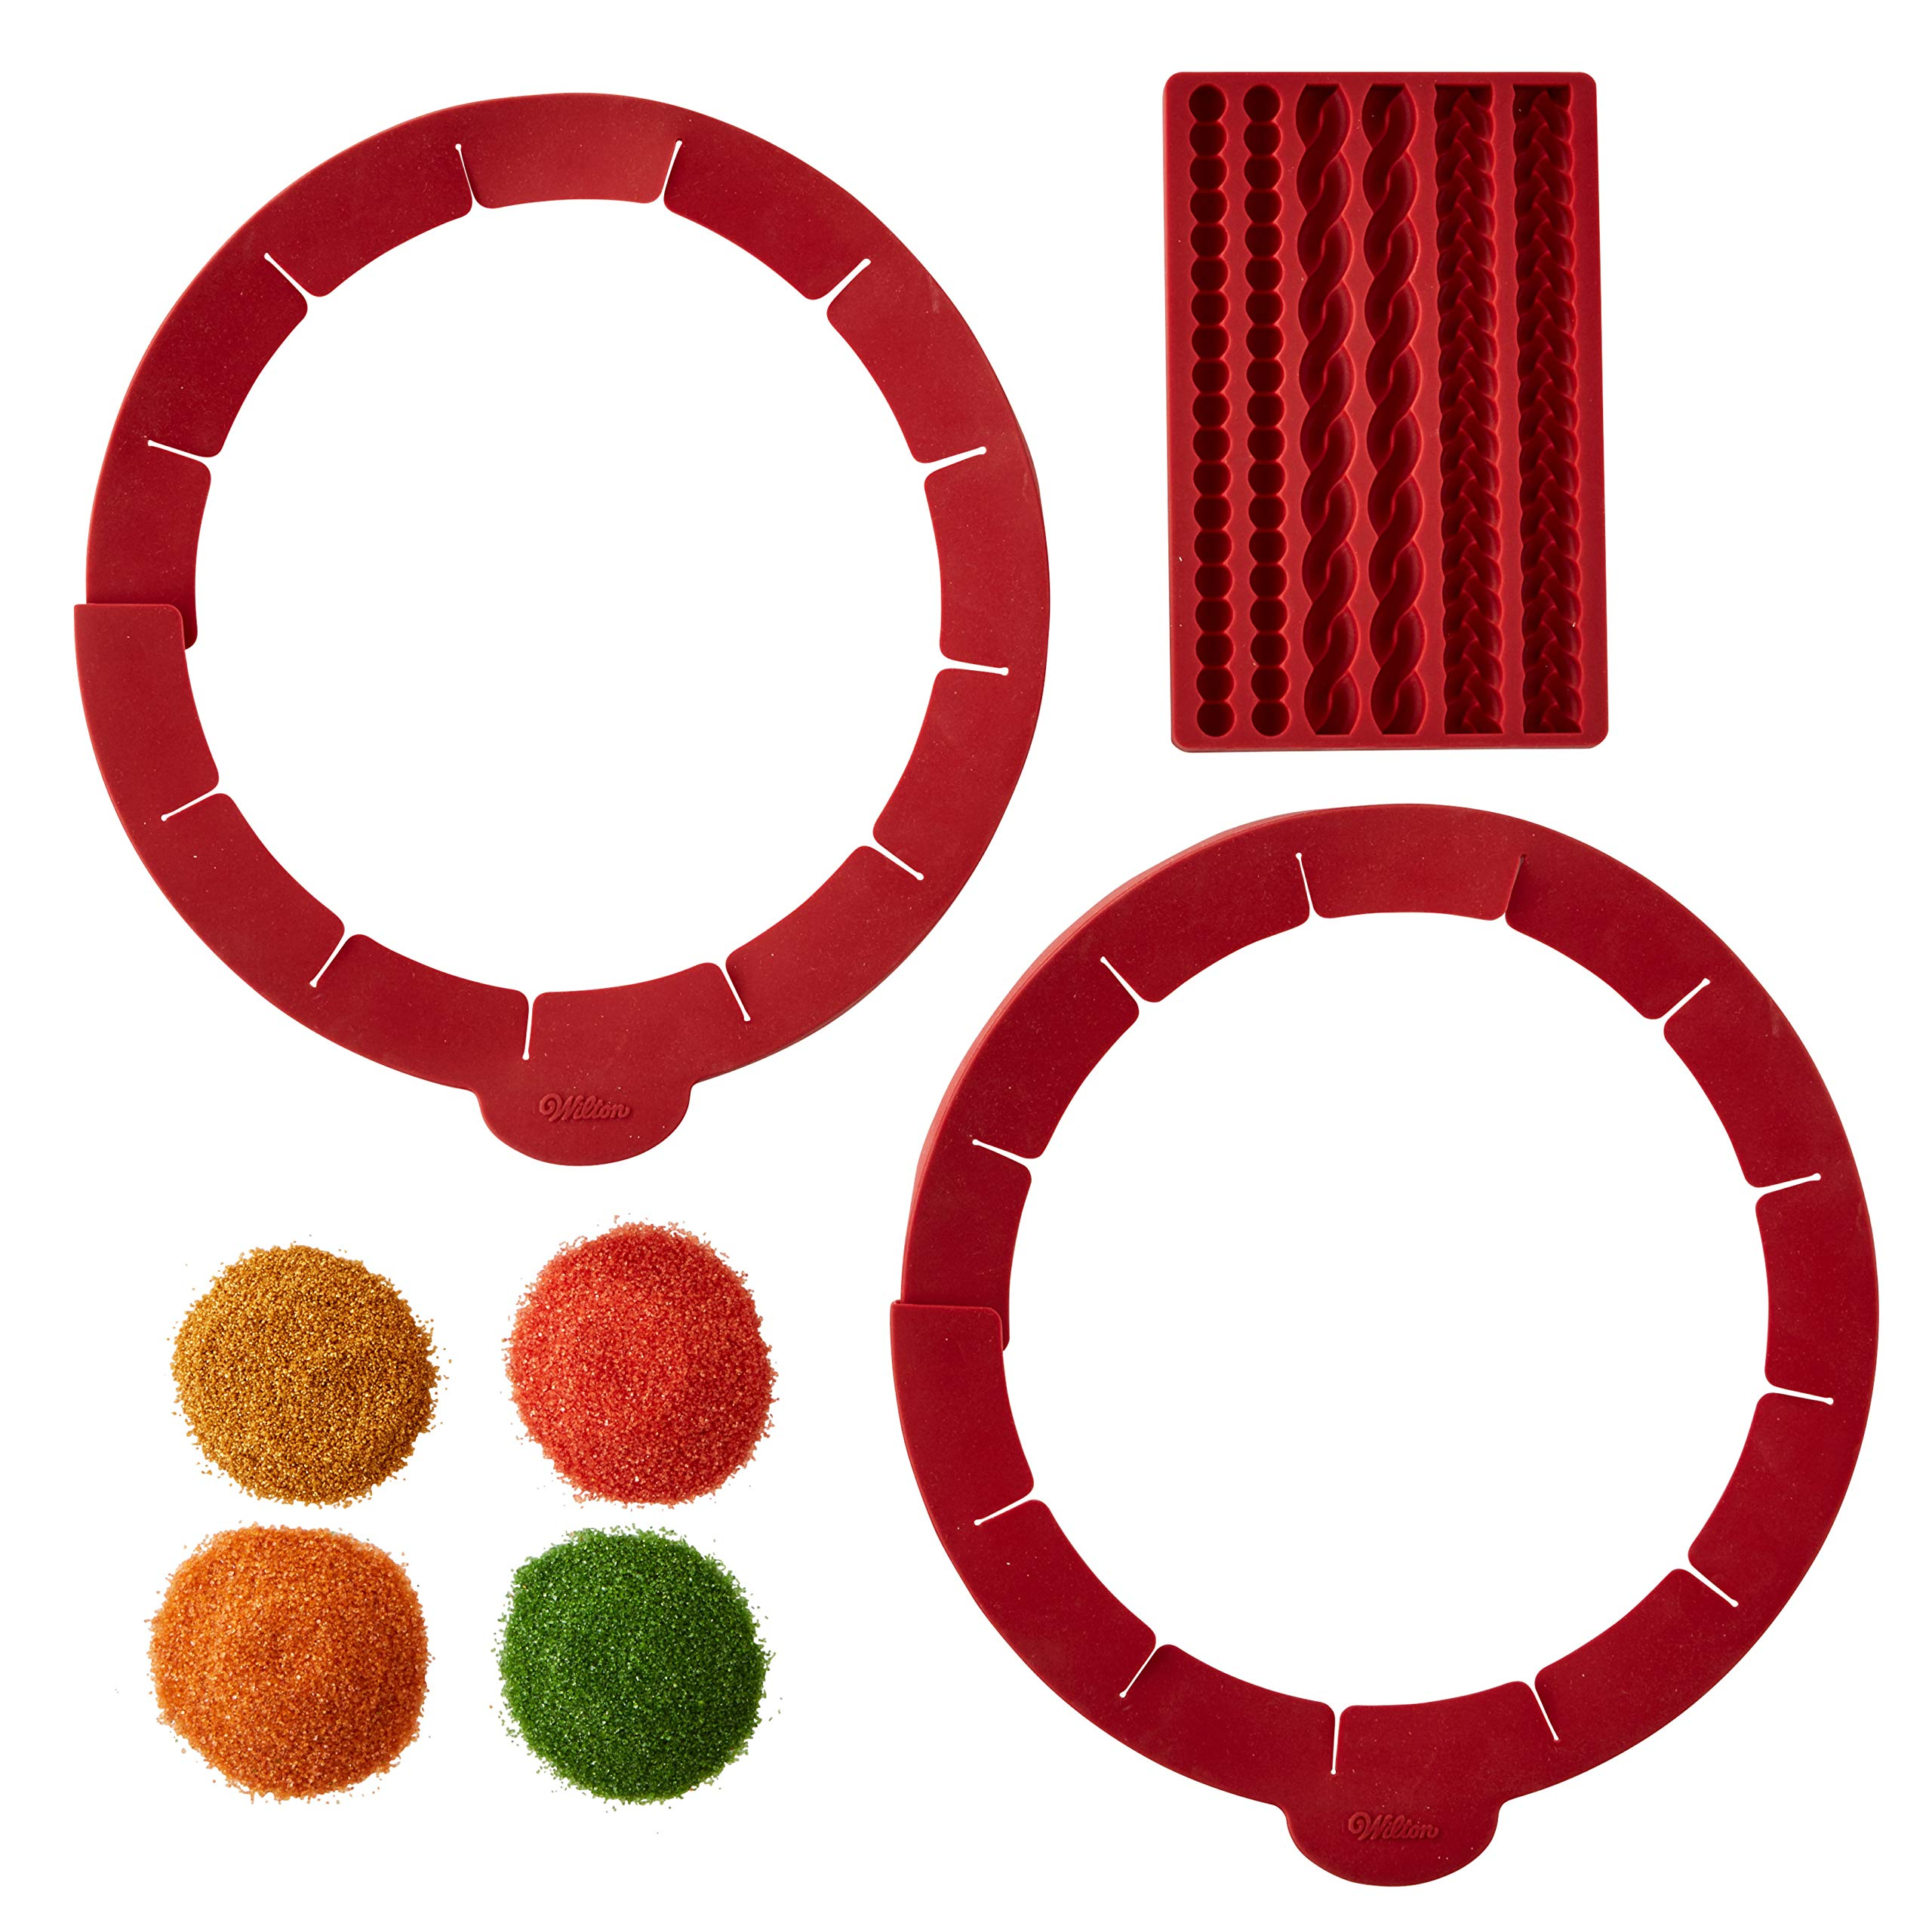 Wilton Silicone Pie Baking and Decorating Set, 6-Piece - Silicone Pie Mold, Pie Shield, Fall Colored Sugars by Wilton